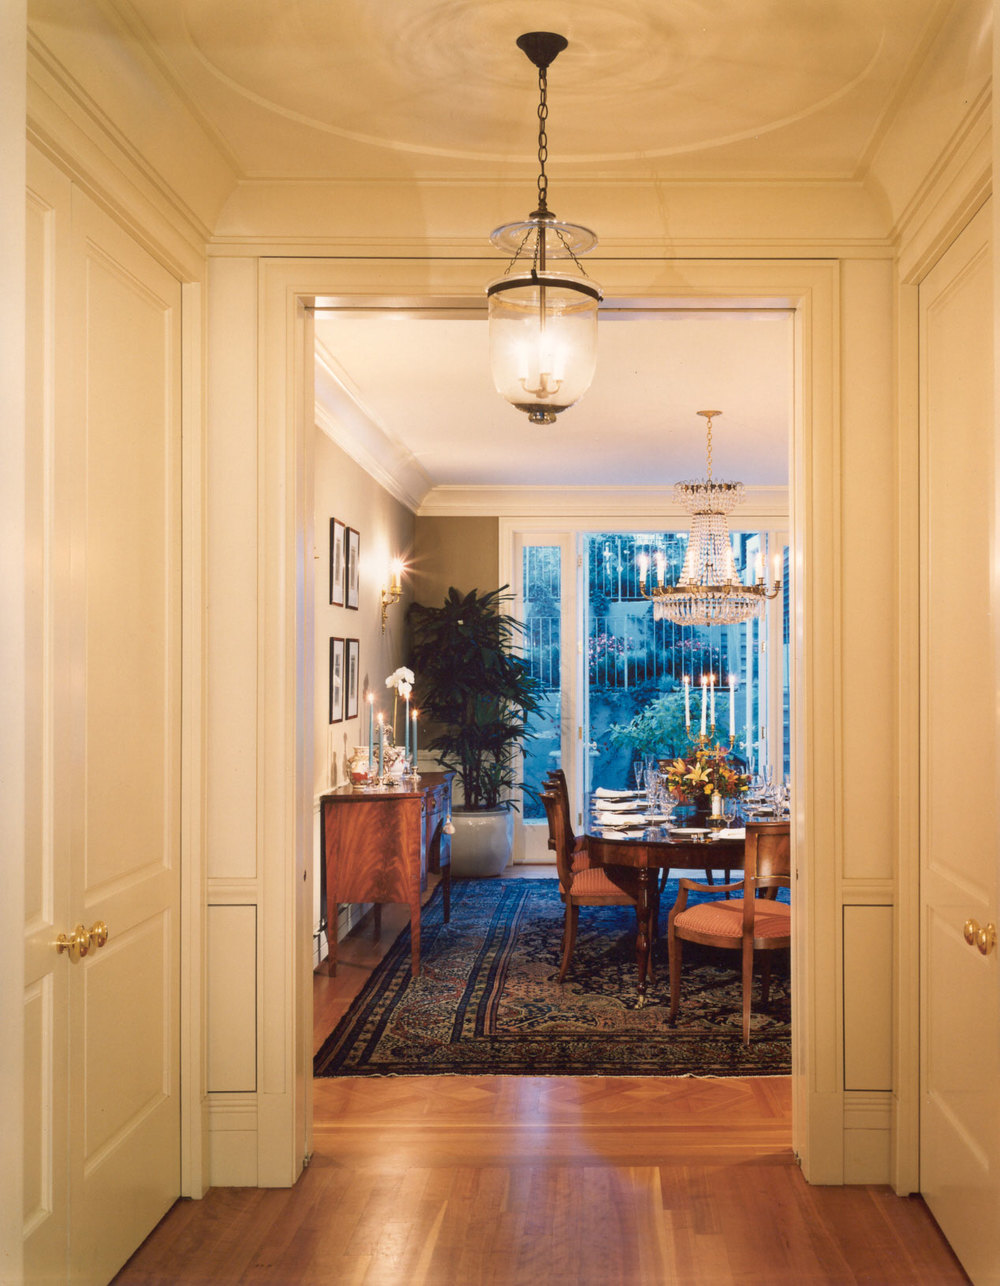 mcinerney-dining-room-entrance.jpg